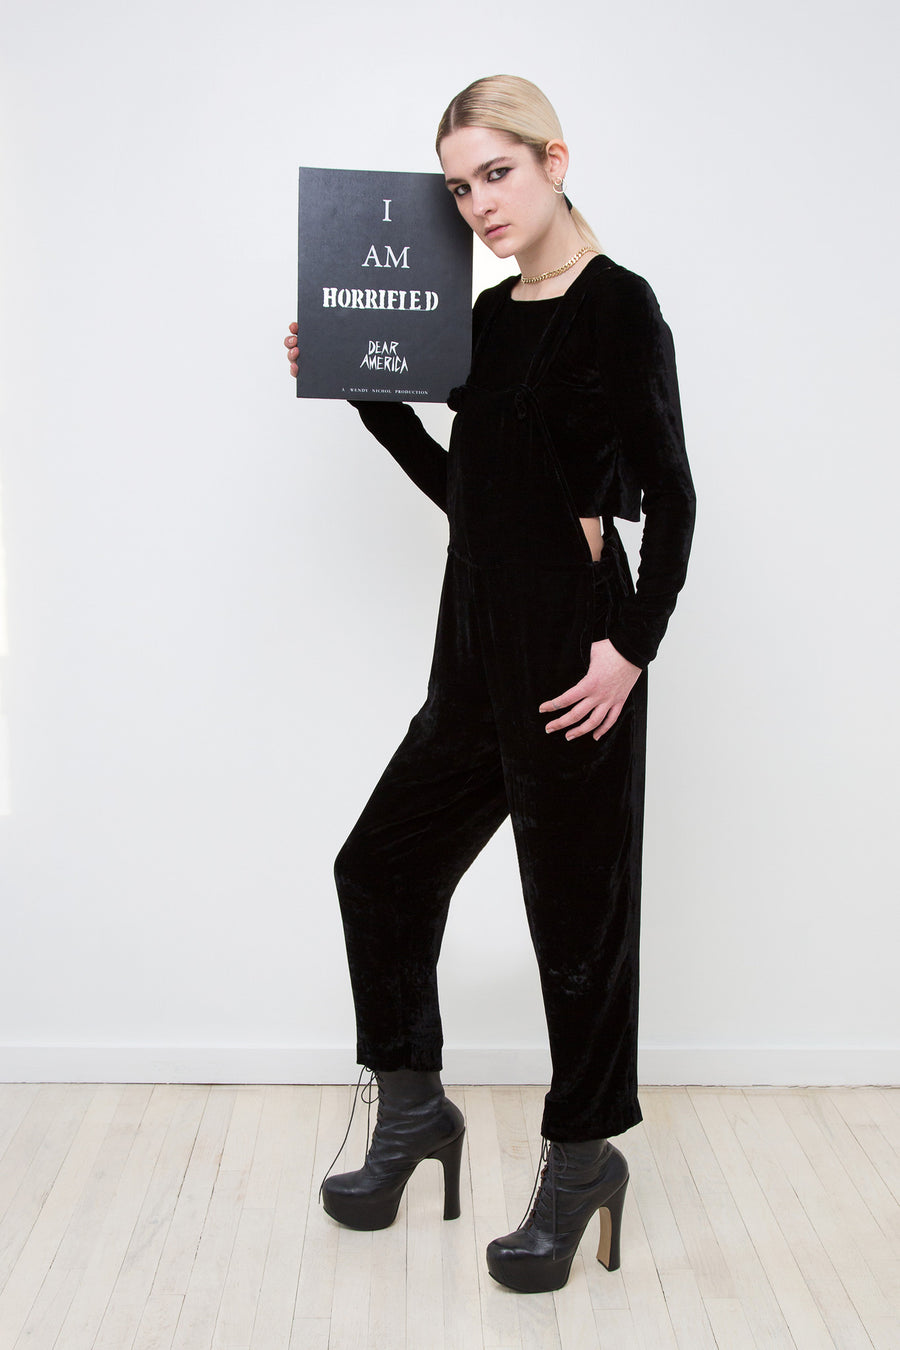 Hayley IMG Model Wendy Nichol AW17 Clothing Fashion Anti Fascist Runway Show Dear America Handmade in NYC New York City Protest March I AM Black Silk Velvet Overalls Jumper Silk Velvet Long Sleeve Crop Top